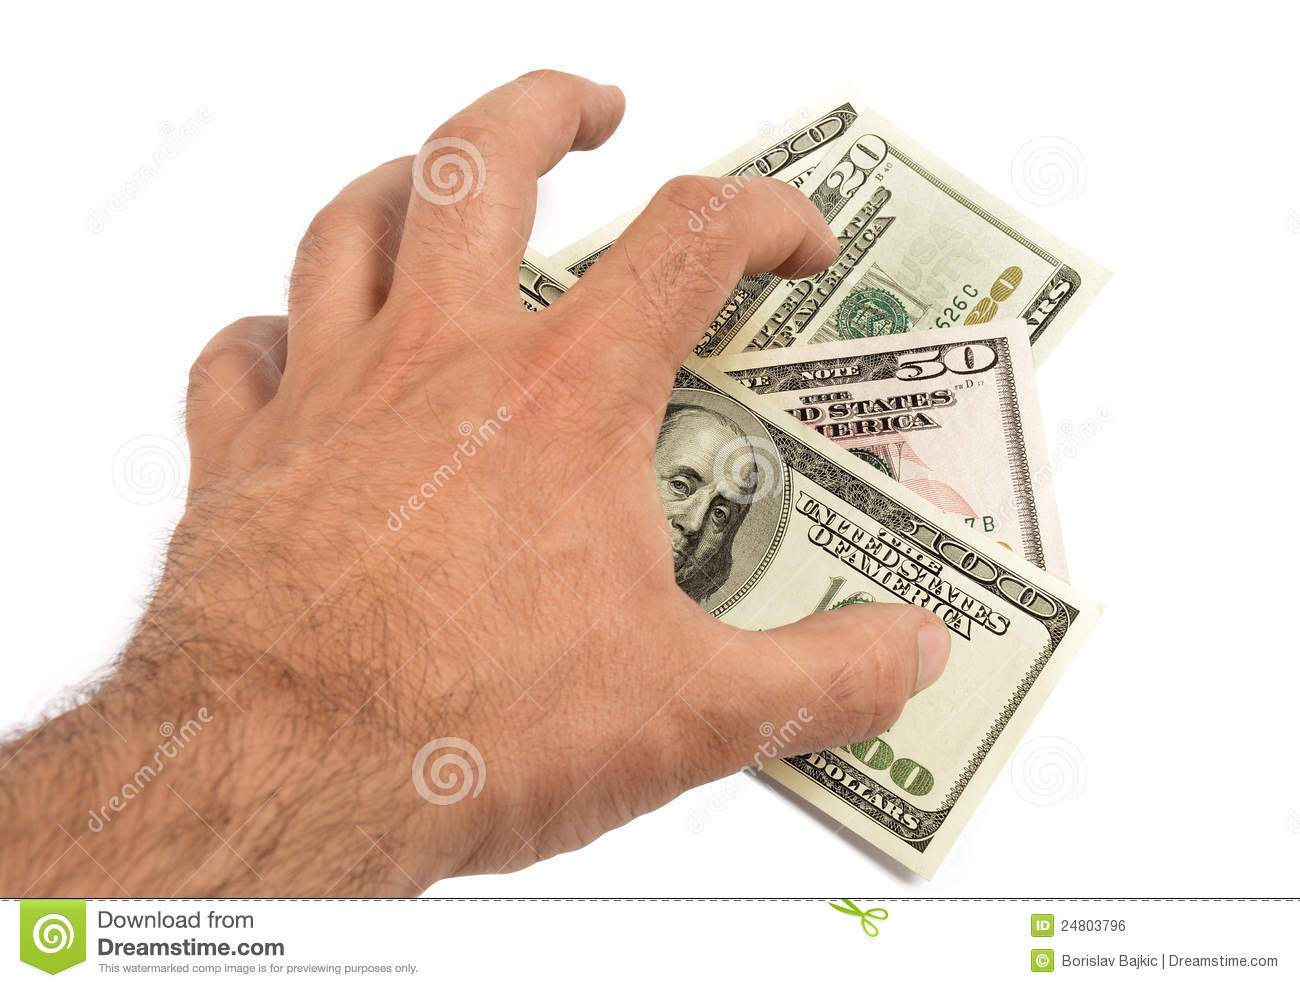 Stealing Money Royalty Free Stock Image - Image: 24803796